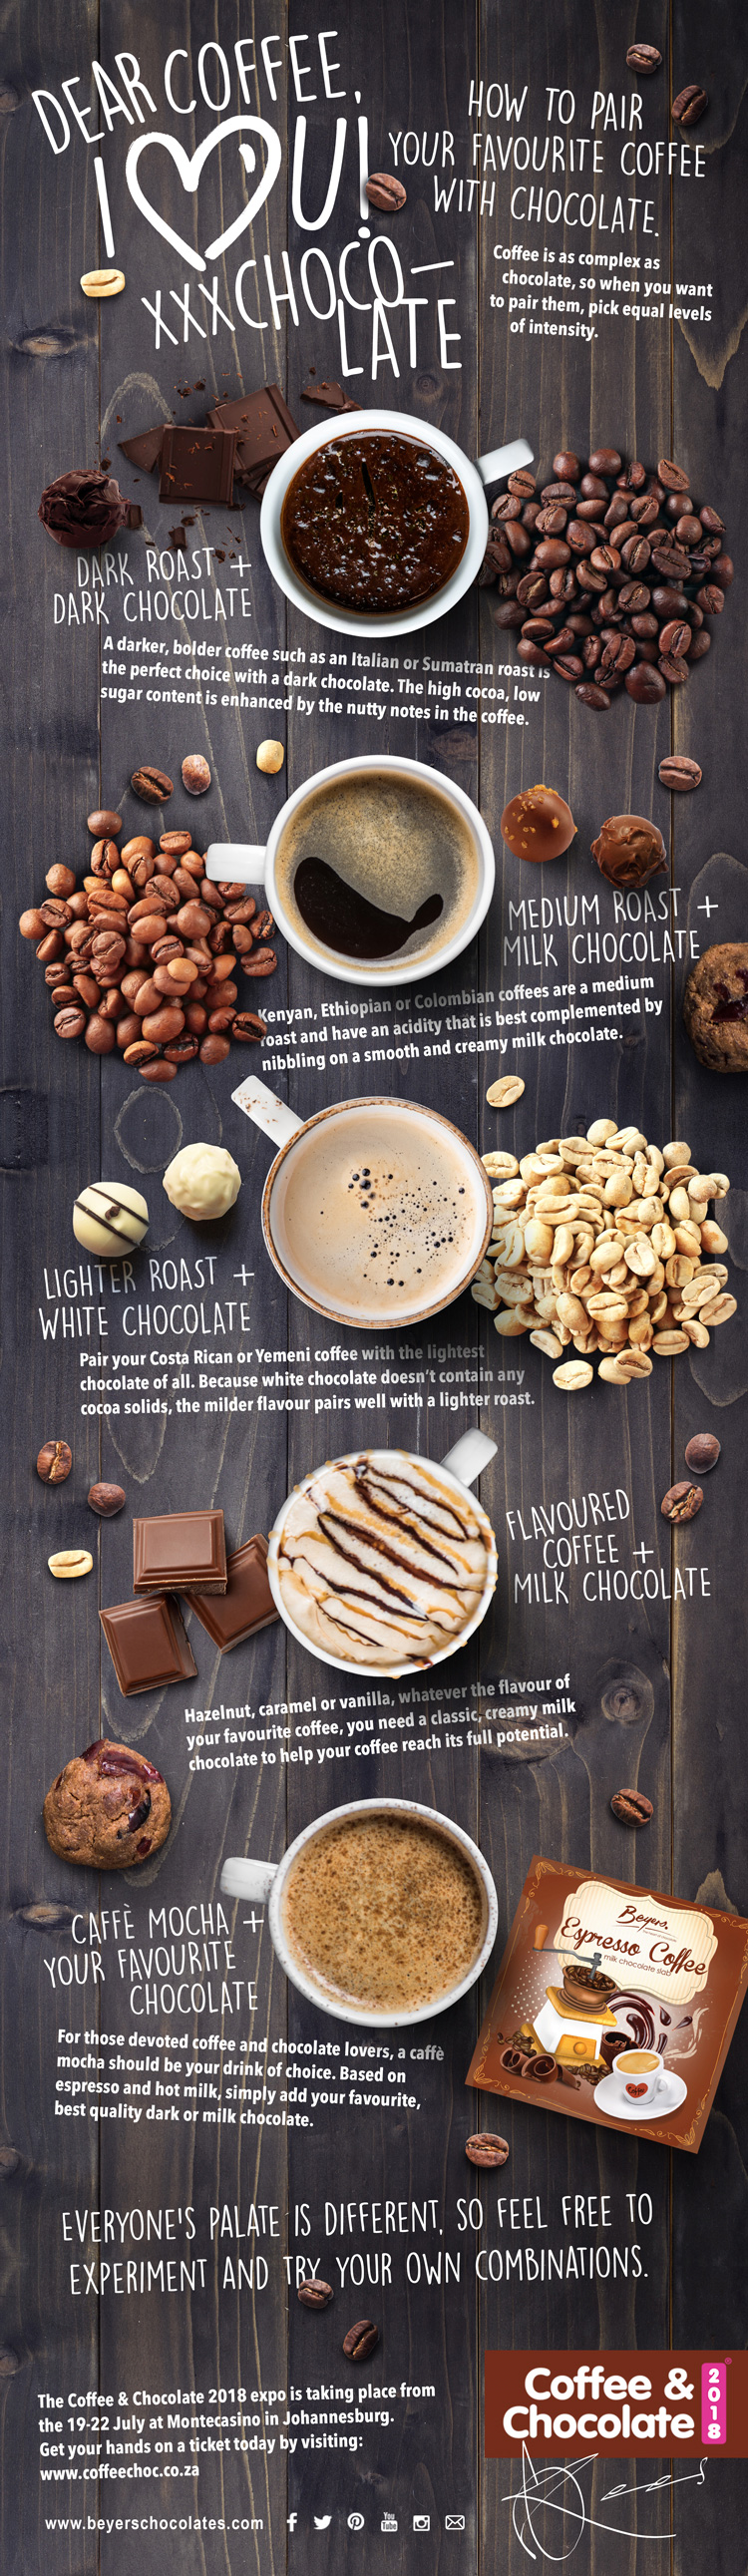 Coffee and chocolate pairings infographic